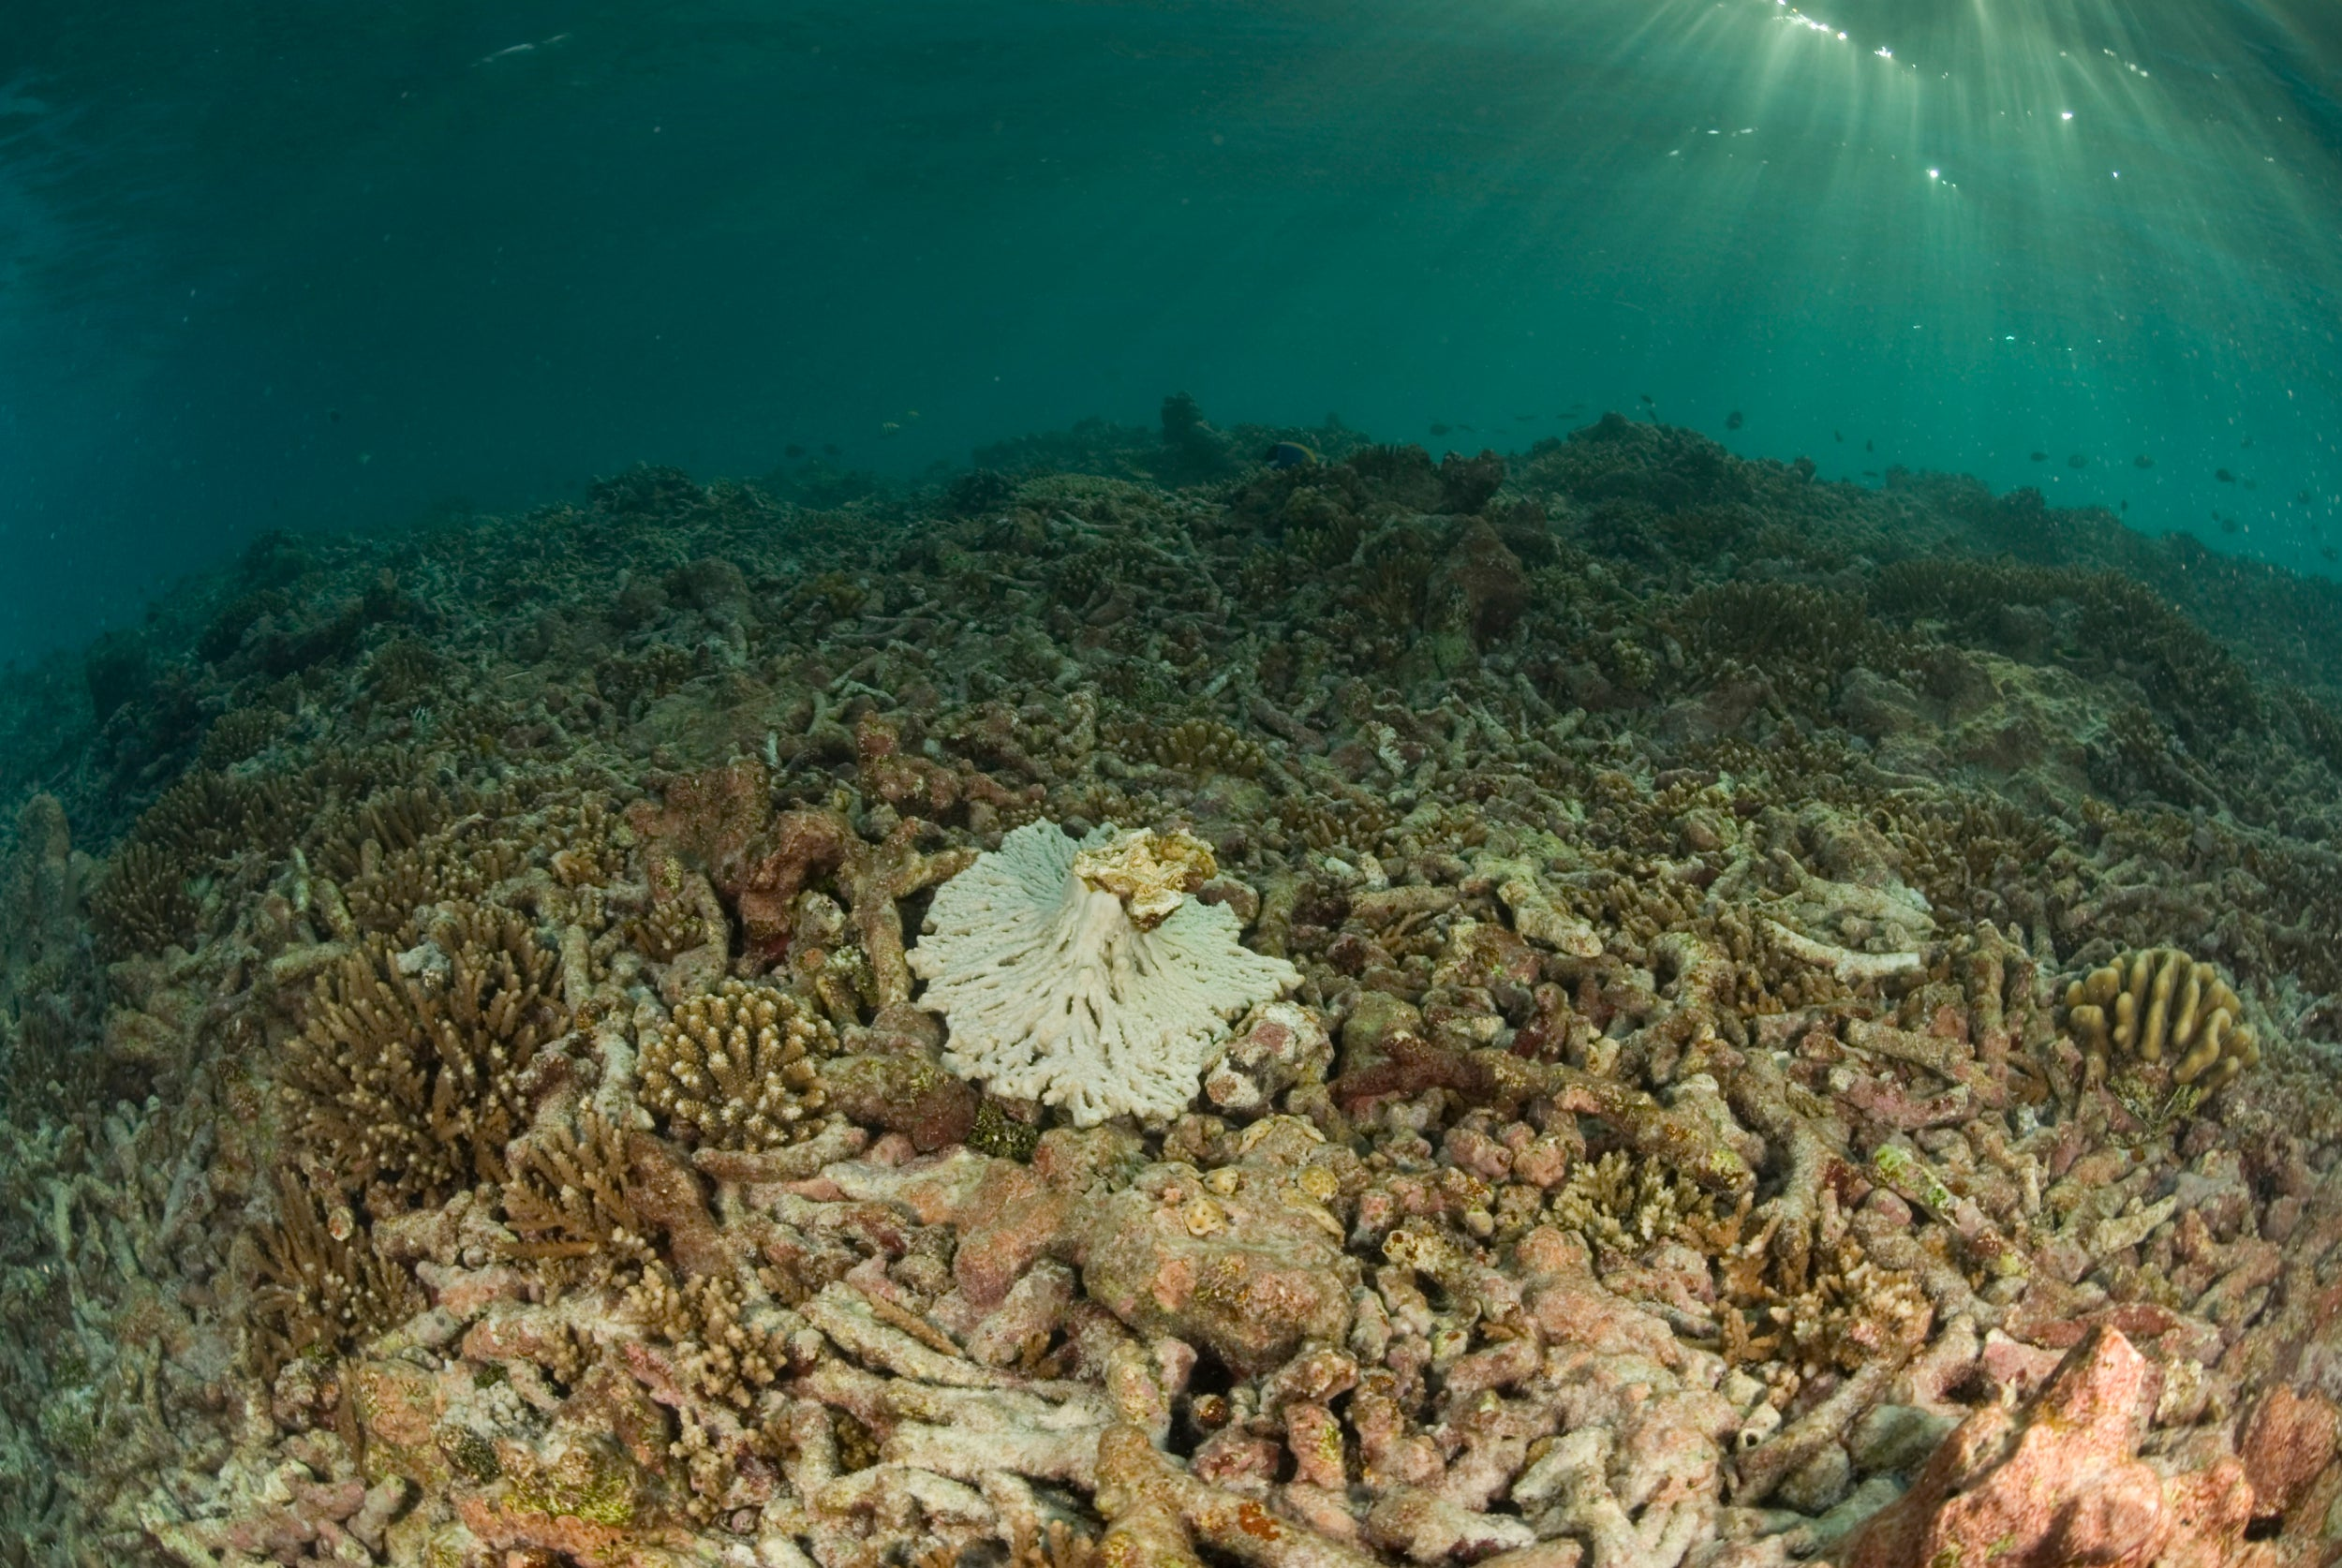 Coral reef in seychelles that has degraded